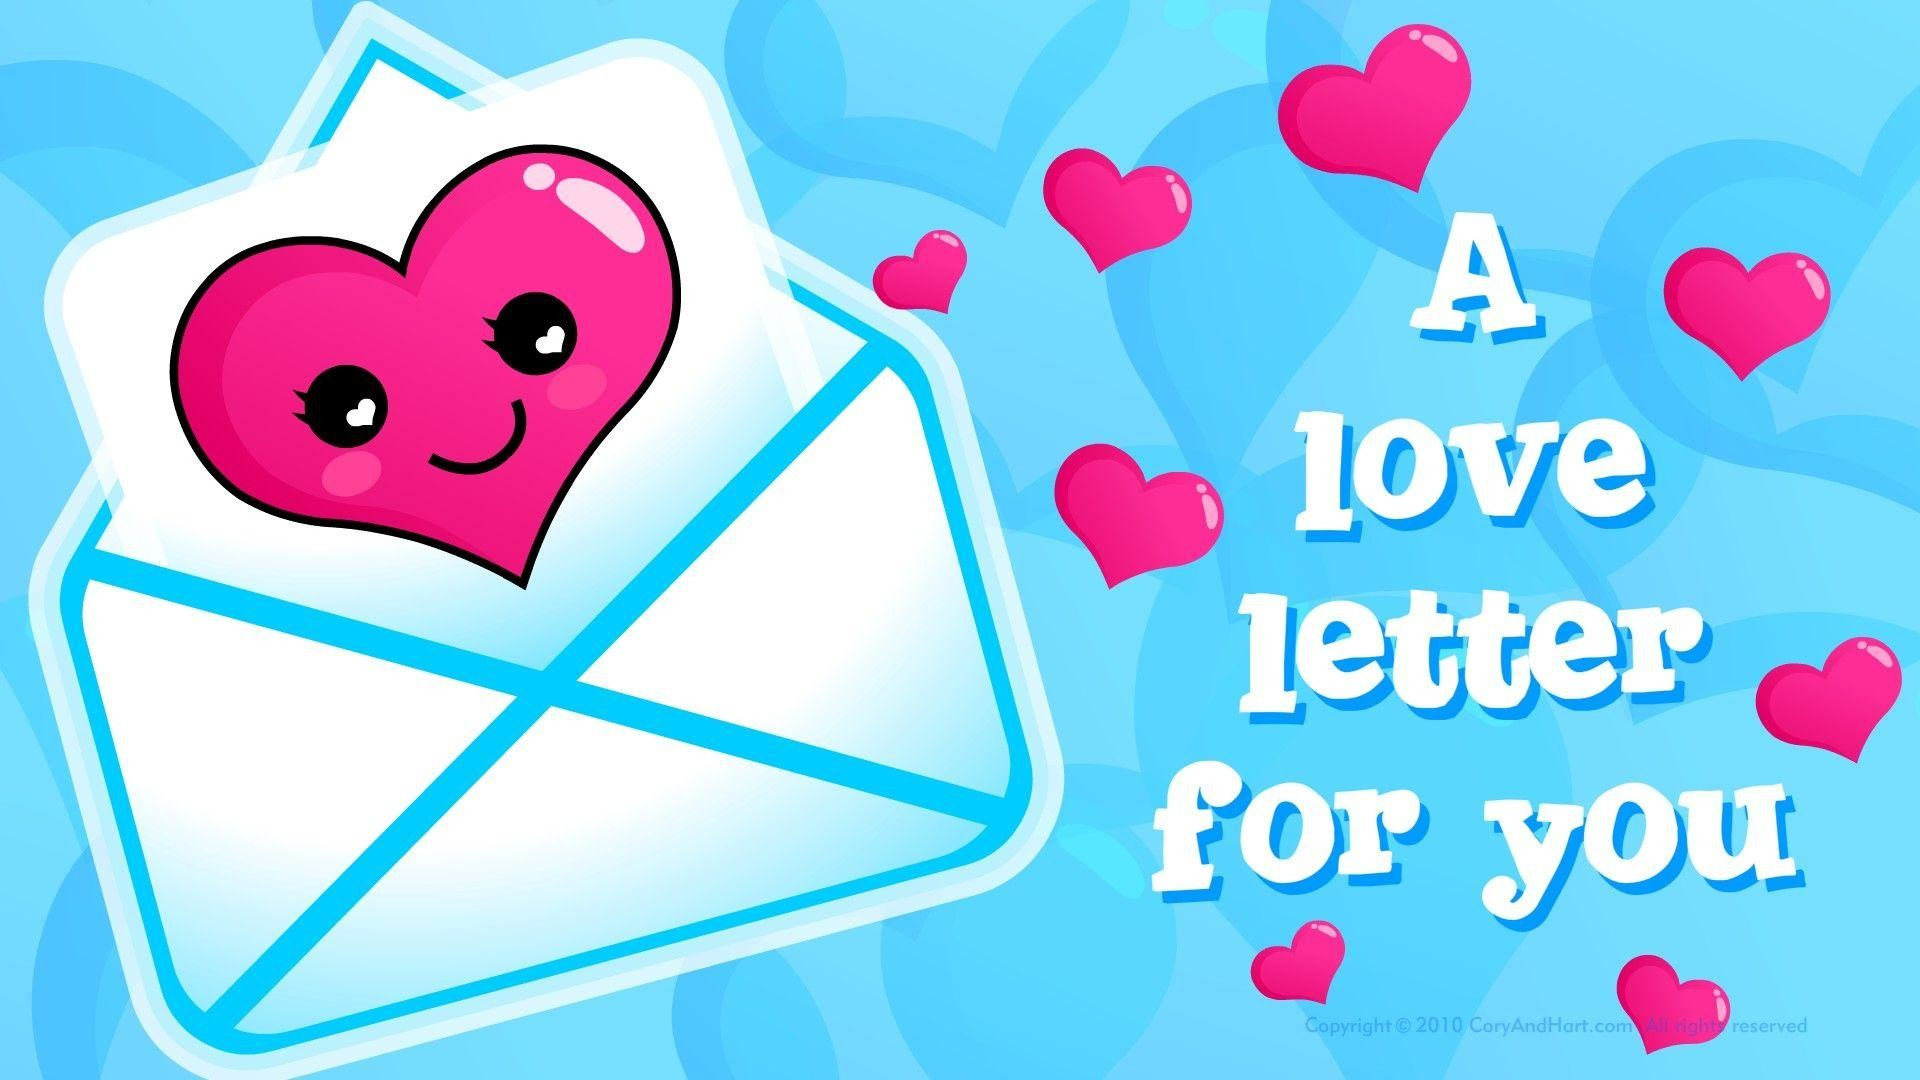 Love Images Free Download Love Letter Wallpaper For You